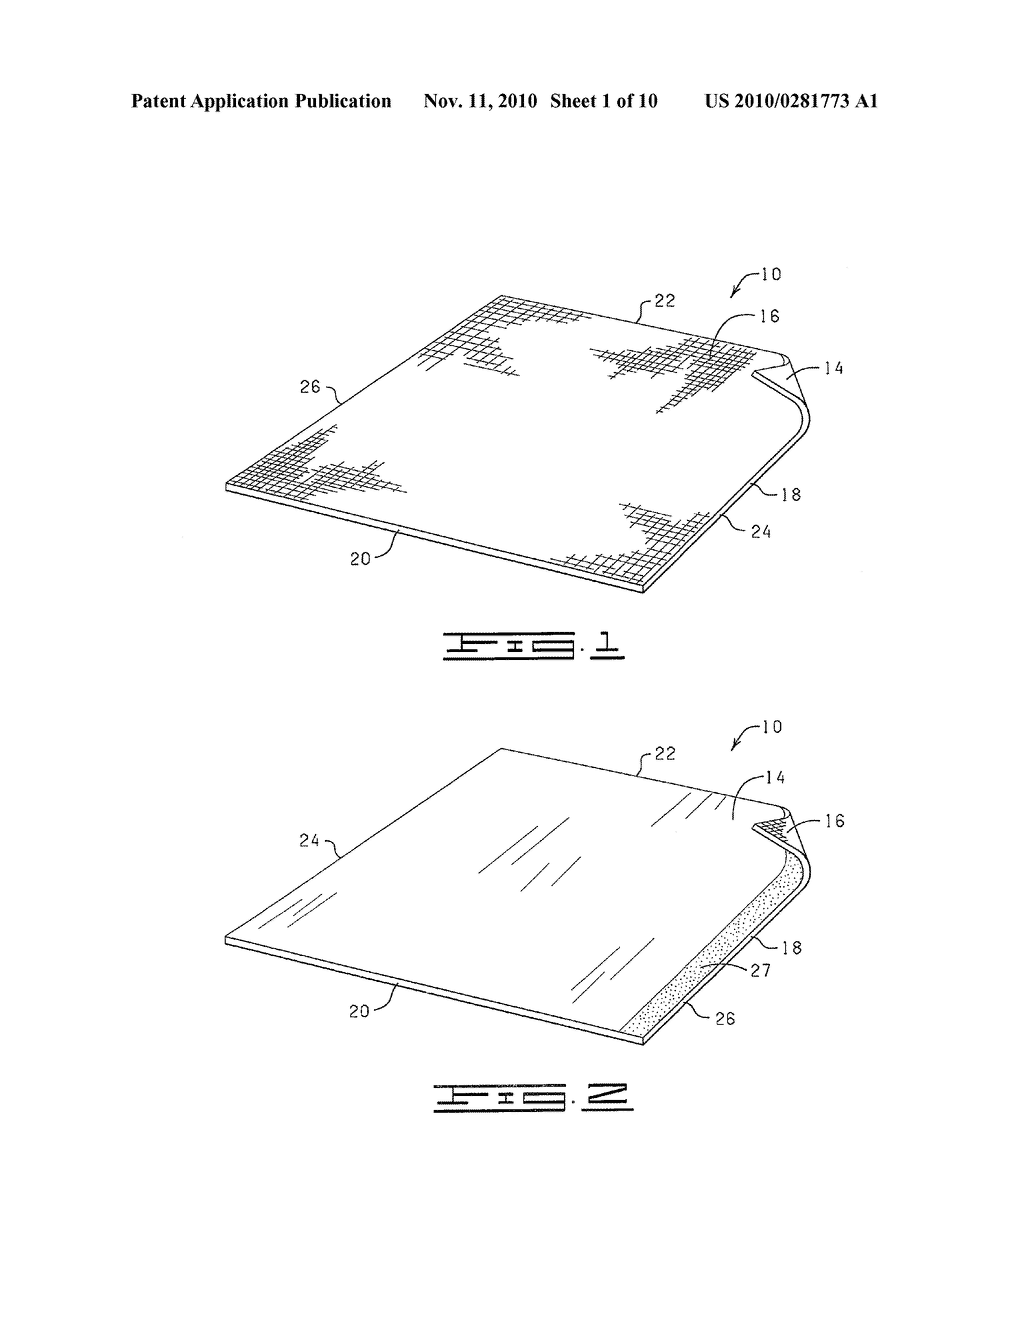 DECORATIVE SLEEVE COVER FORMED OF A POLYMERIC MATERIAL HAVING A TEXTURE OR APPEARANCE SIMULATING THE TEXTURE OR APPEARANCE OF CLOTH - diagram, schematic, and image 02